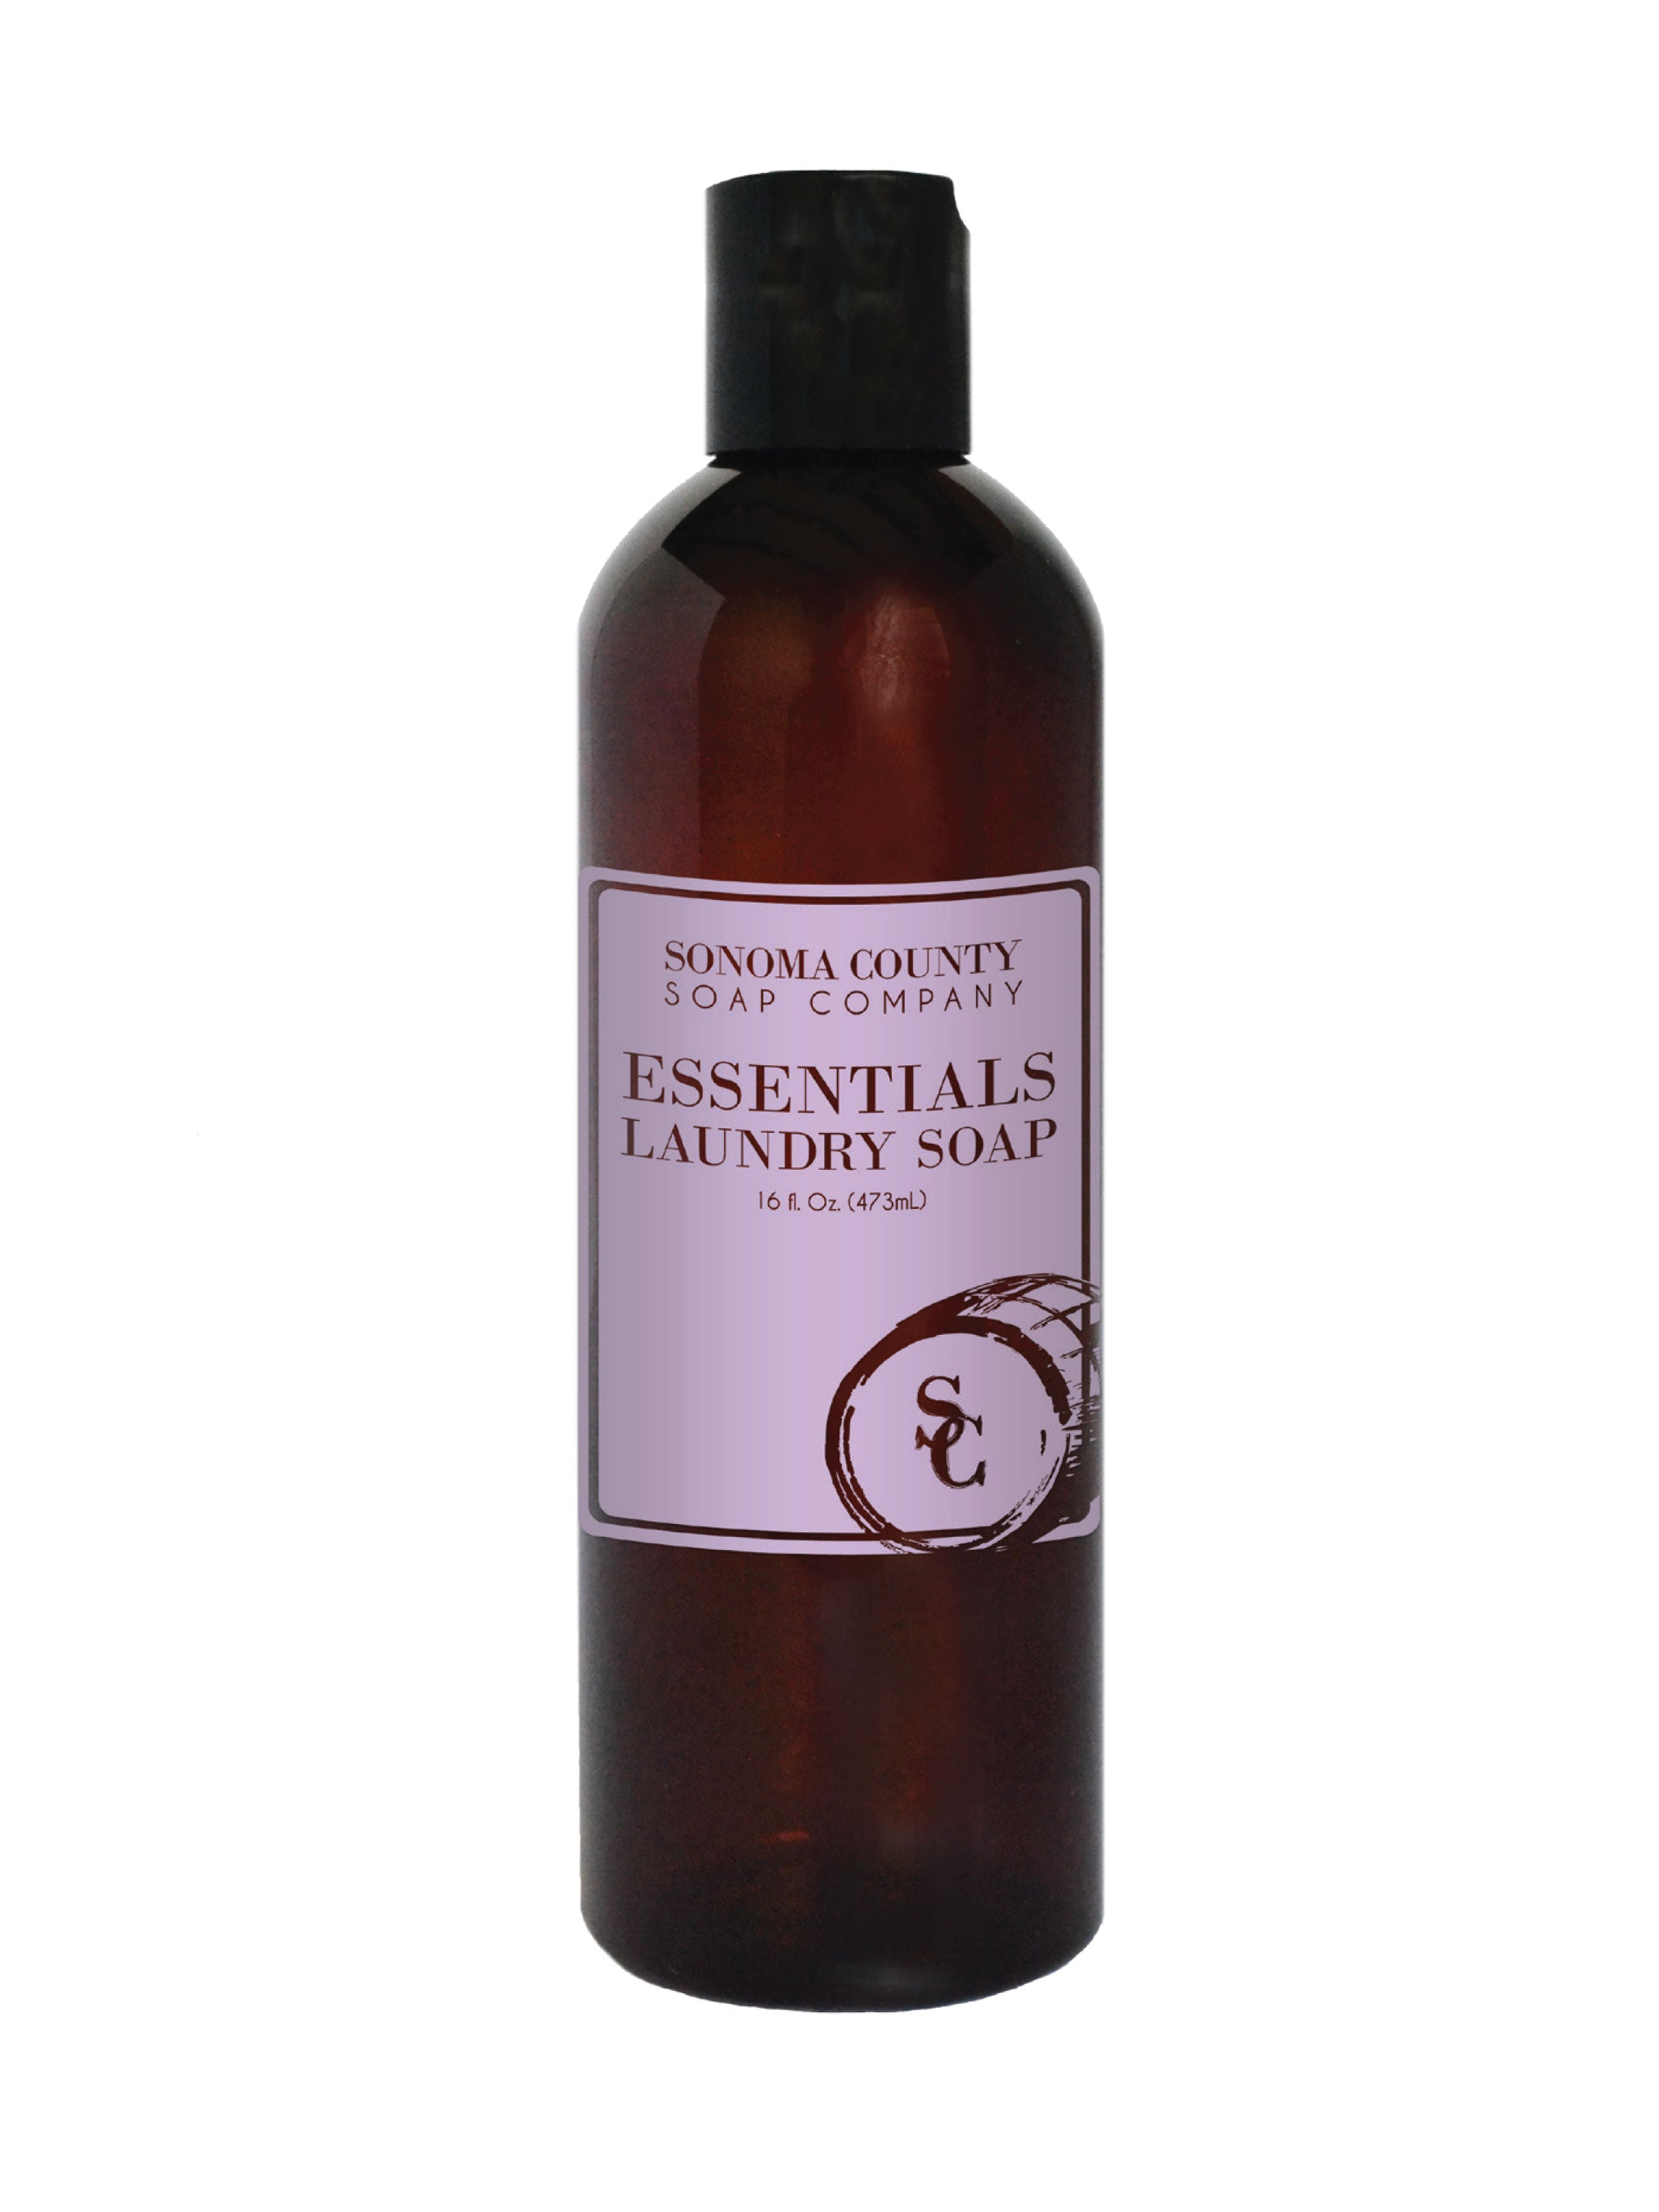 Essentials Laundry Soap